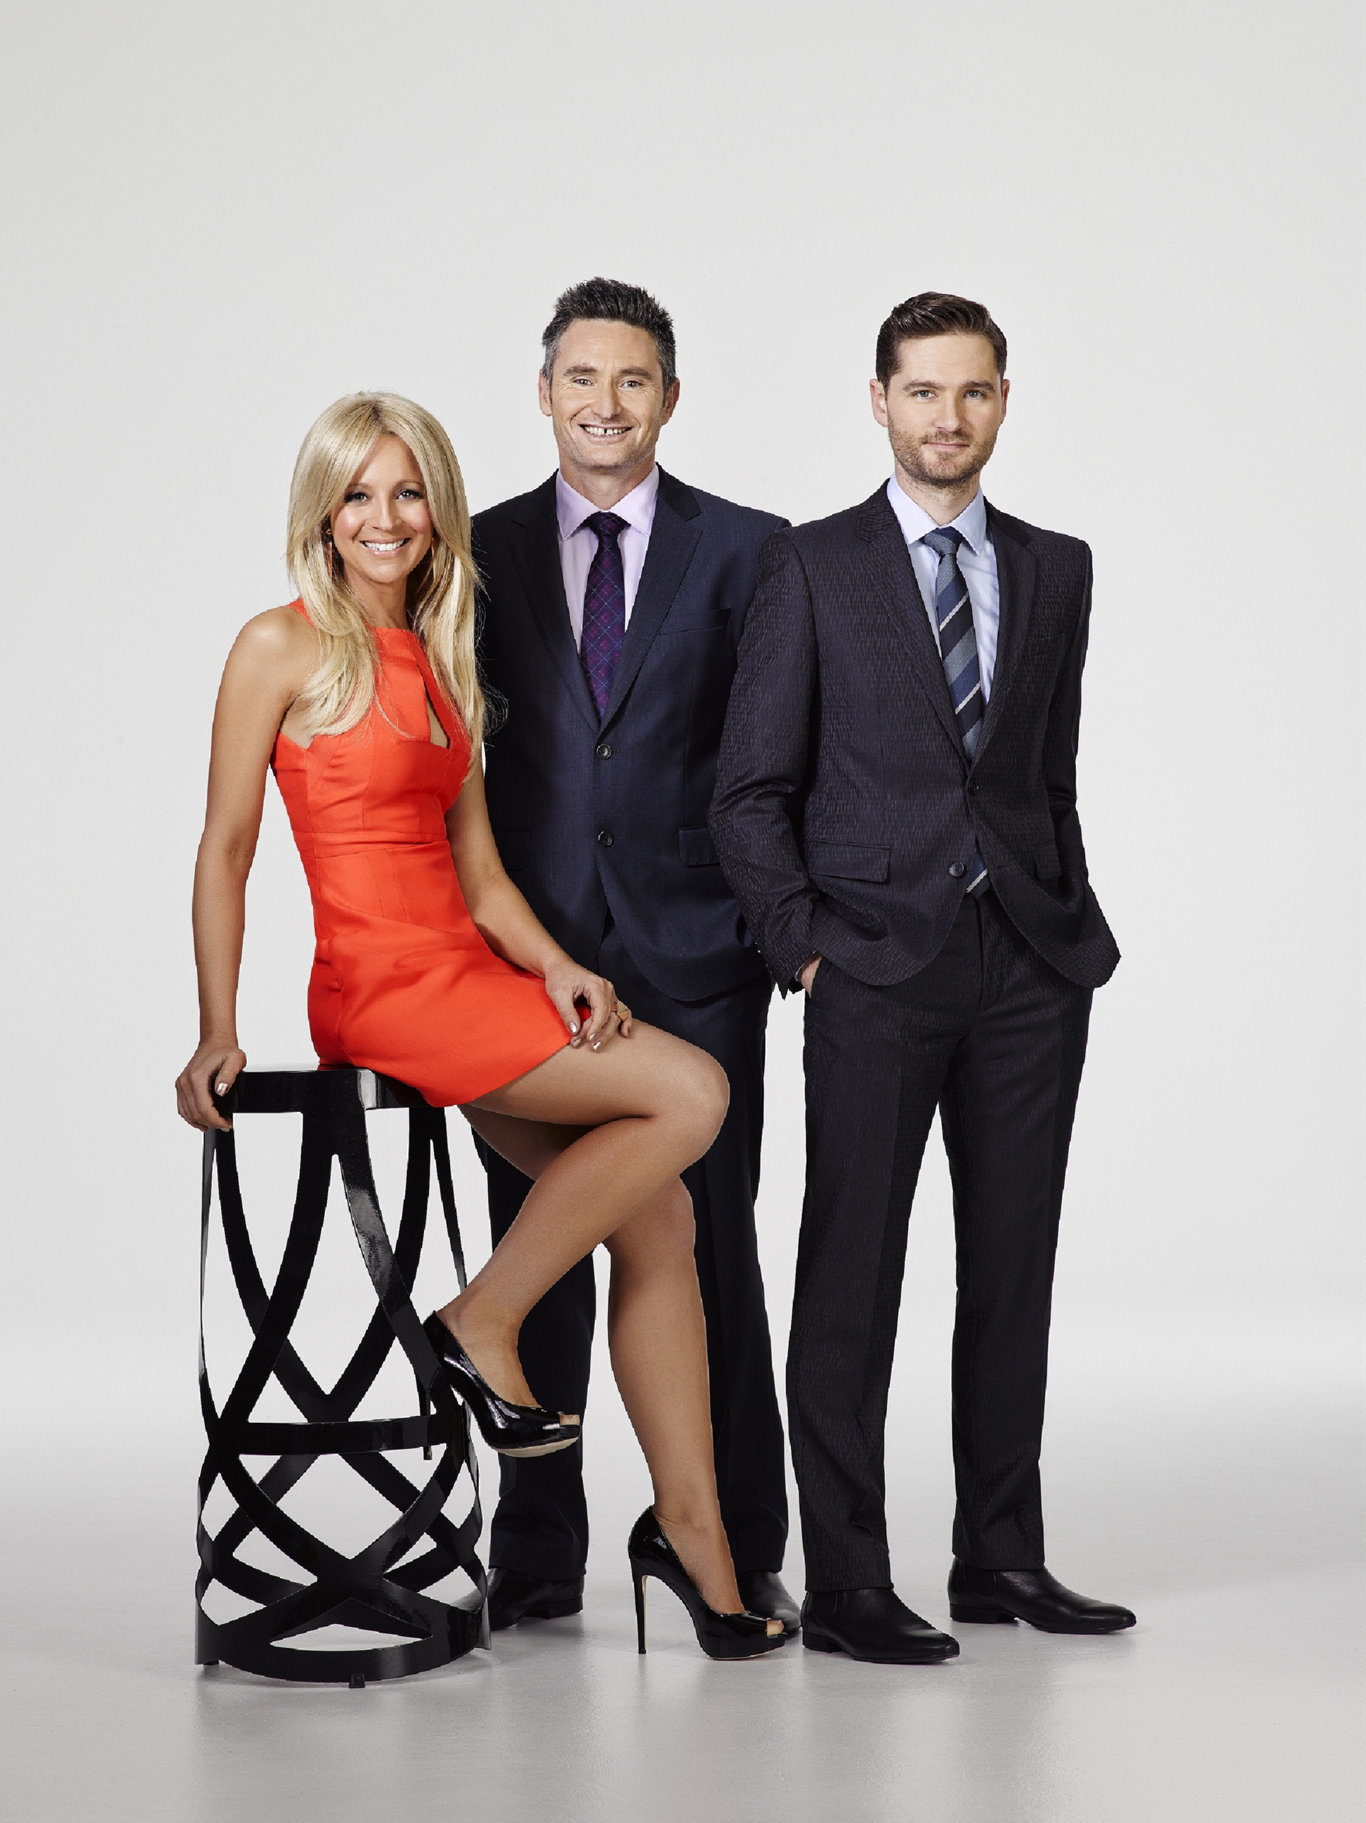 The Project's early trio of Carrie Bickmore, Dave Hughes and Charlie Pickering.